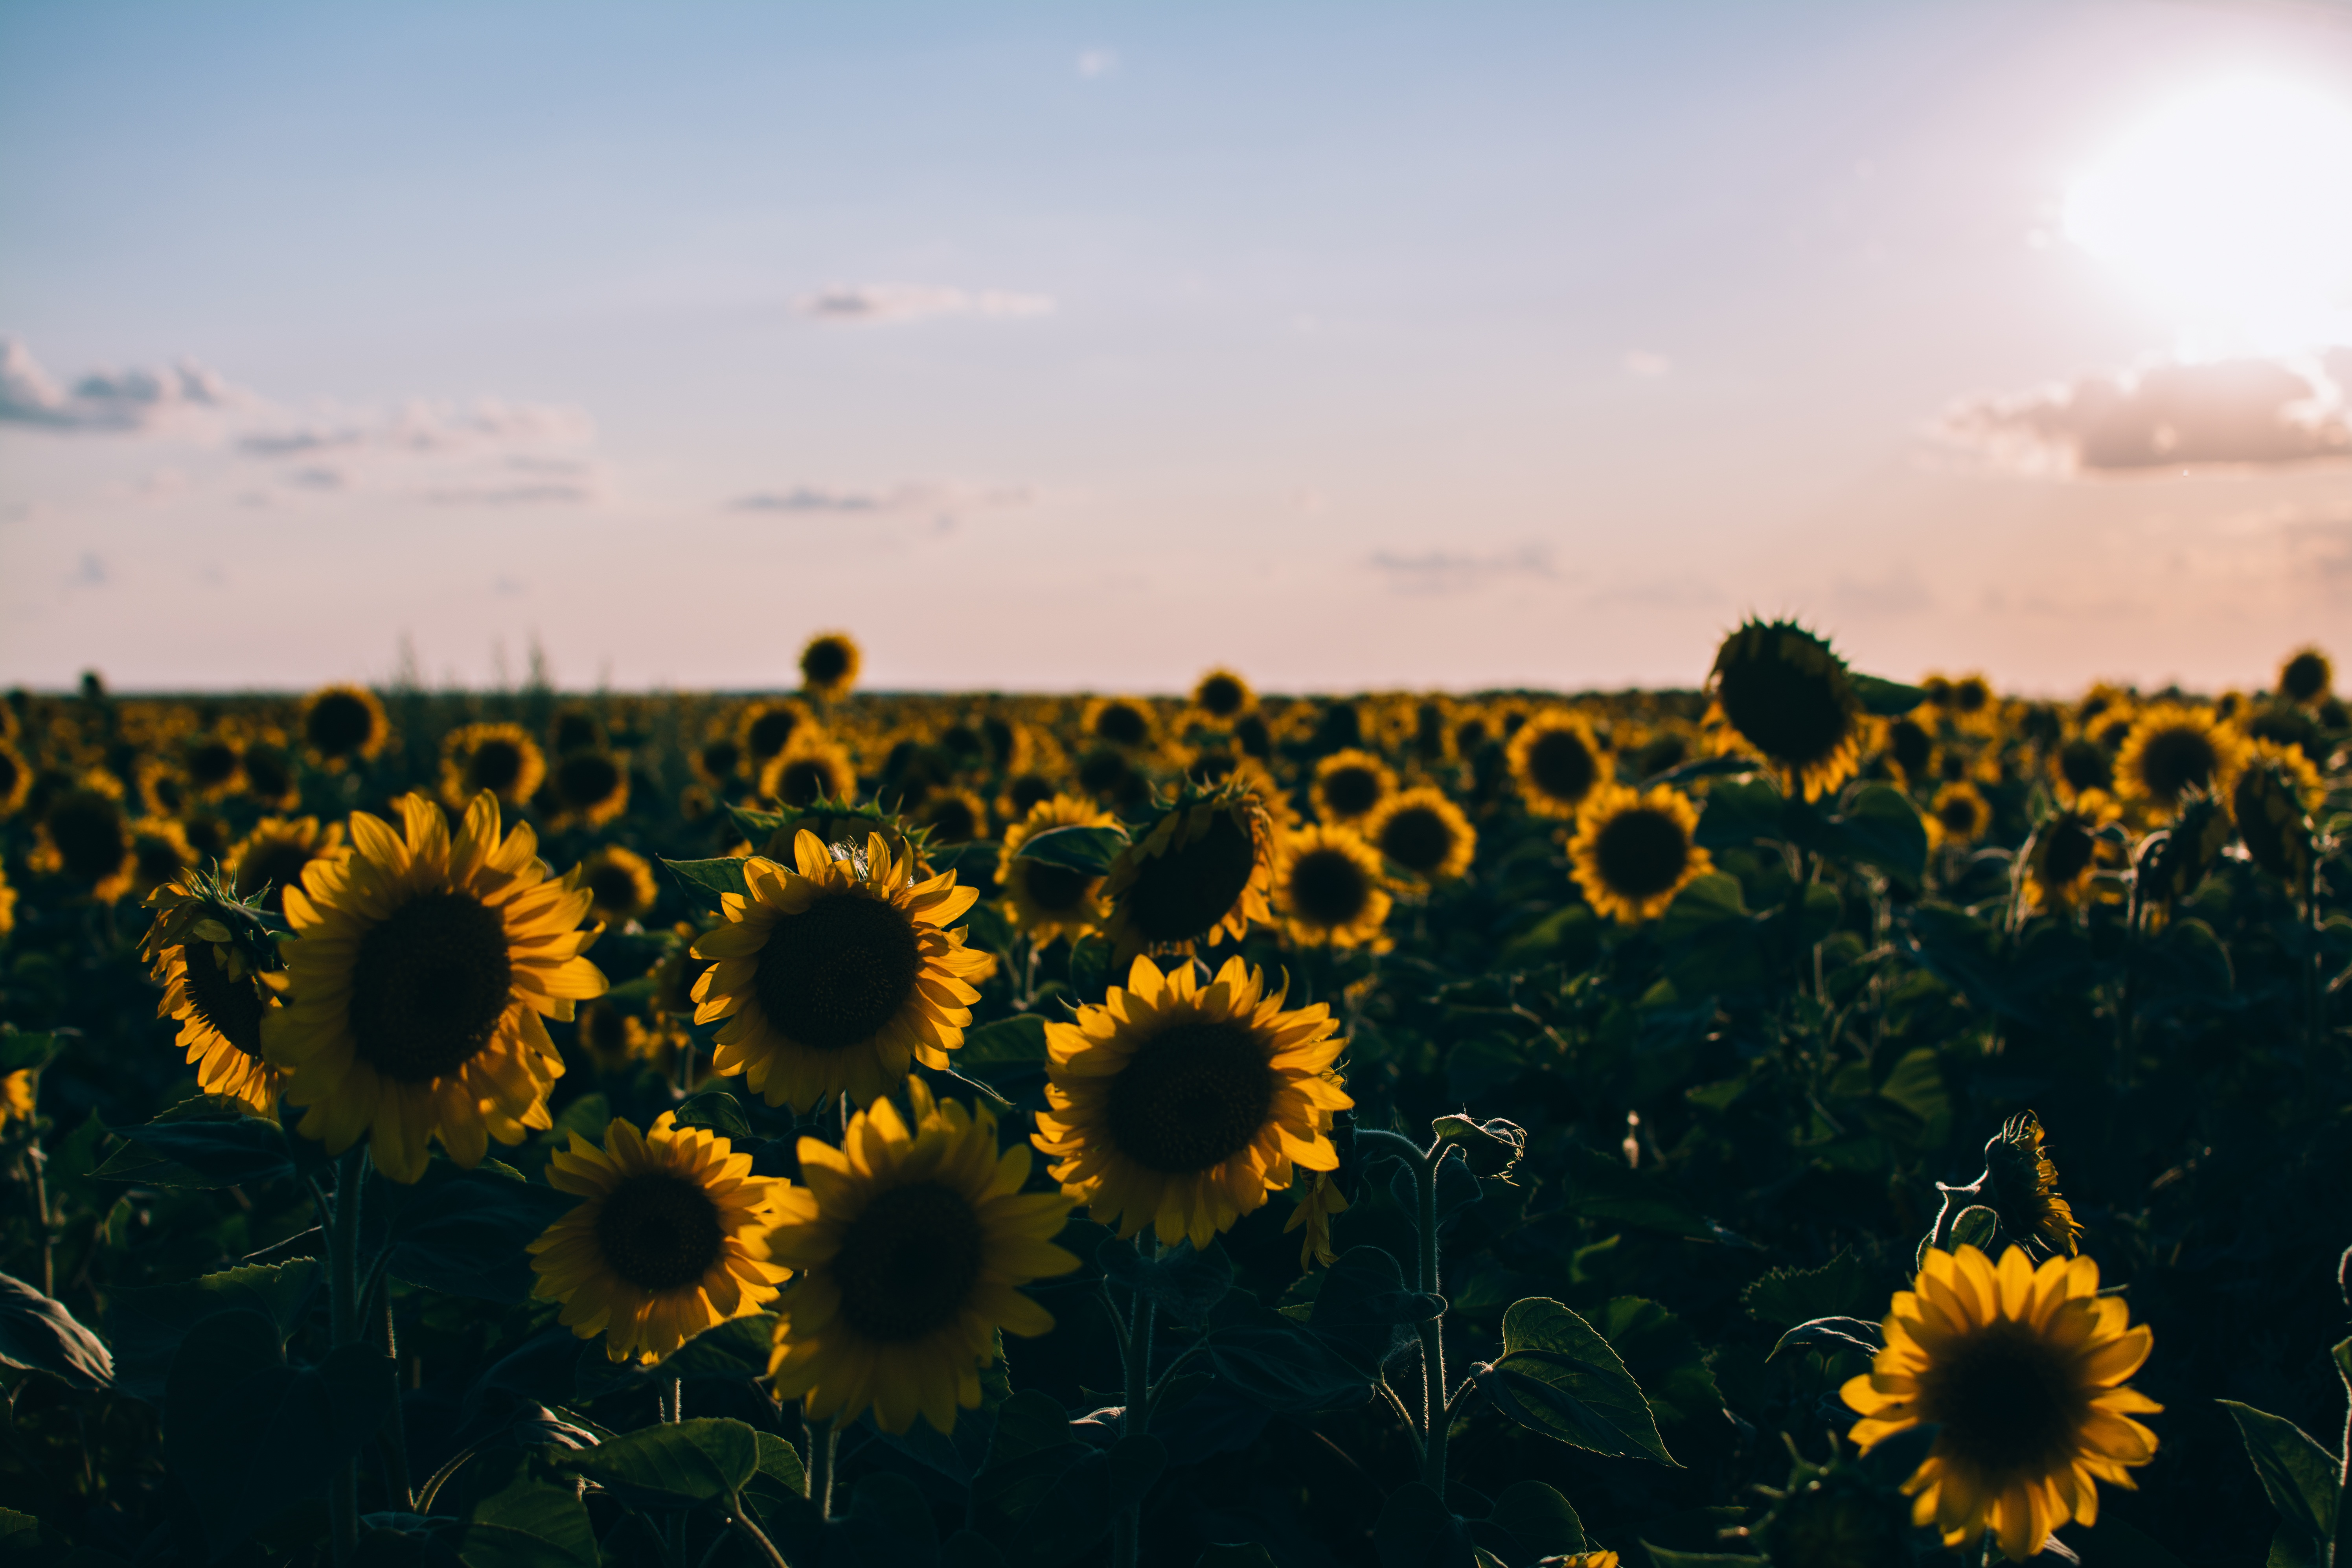 Field Of Sunflowers Wallpaper: Field Of Sunflowers By Rodion Kutsaev